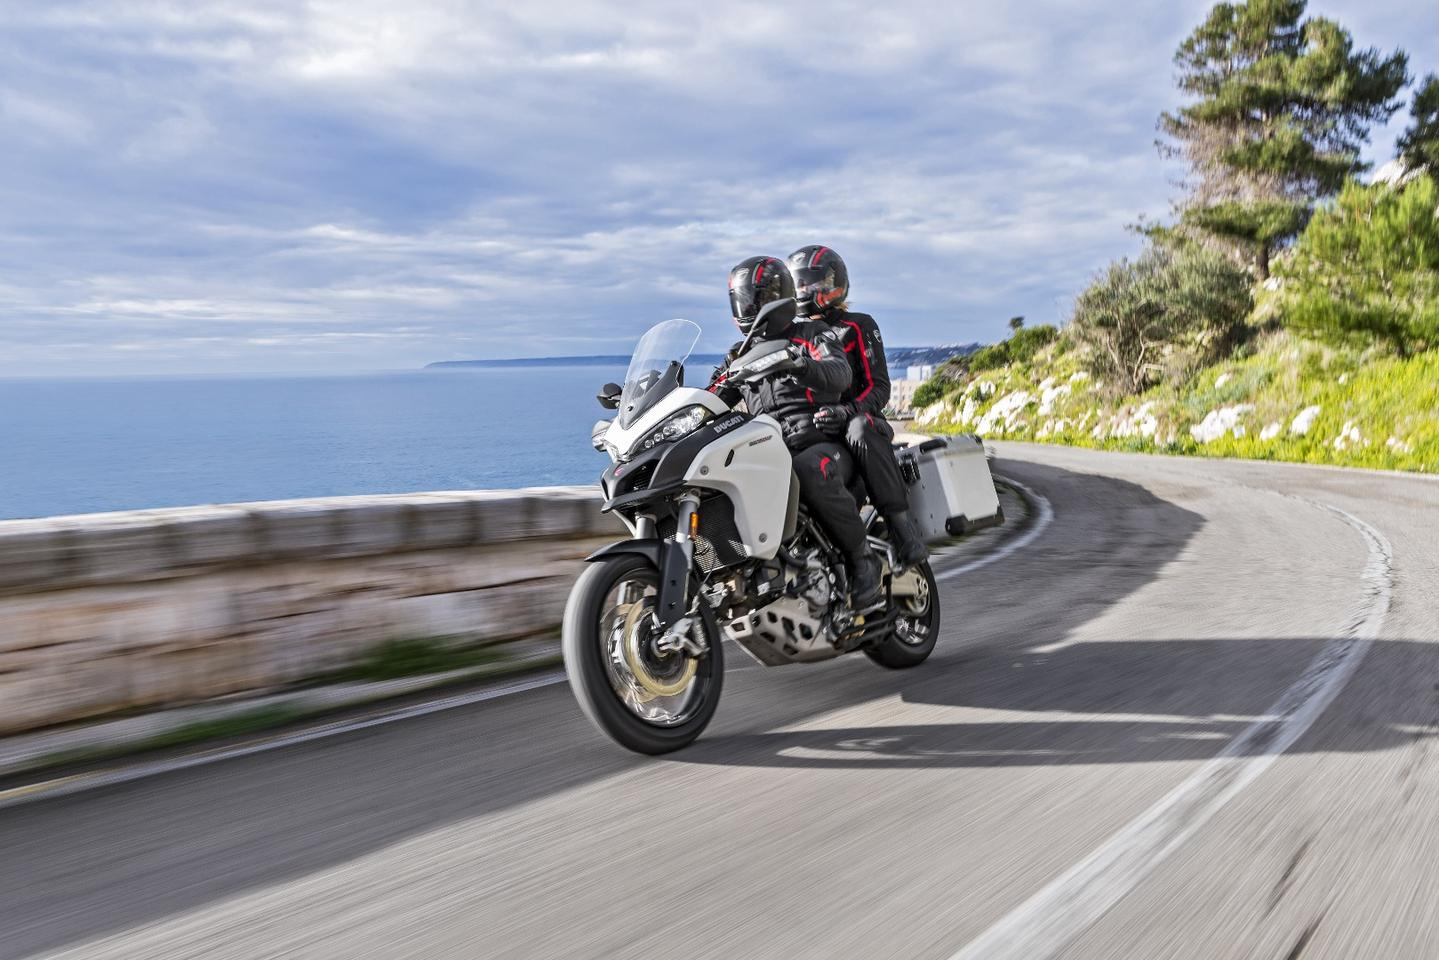 The Ducati Multistrada Enduro is built with longer adventures in mind